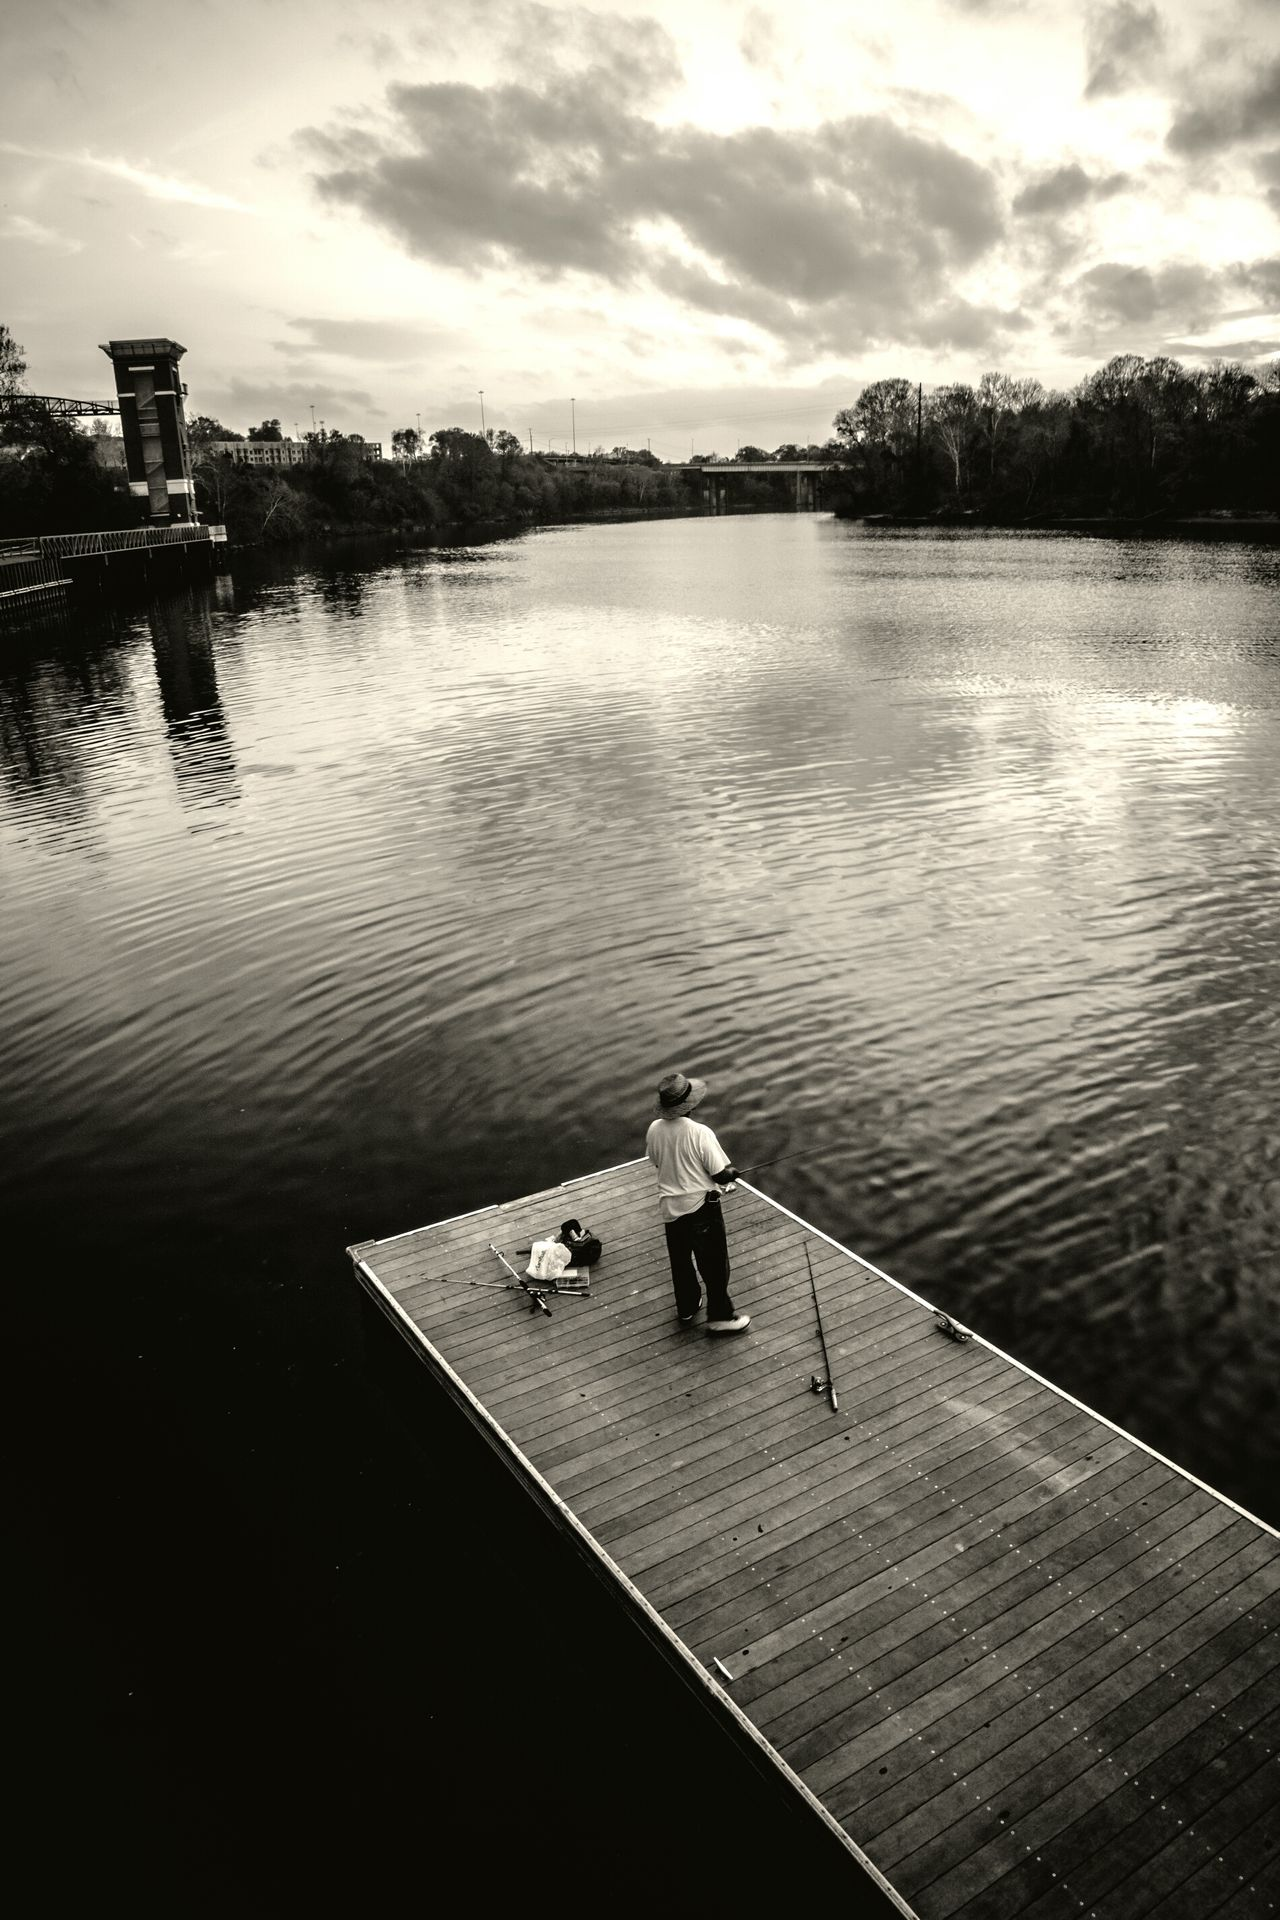 Life 2 Filter Looking Into The Future Alabama Montgomery River Portrait Of America EyeEm Best Shots - Black + White Fishing Light And Shadow Rule Of Thirds